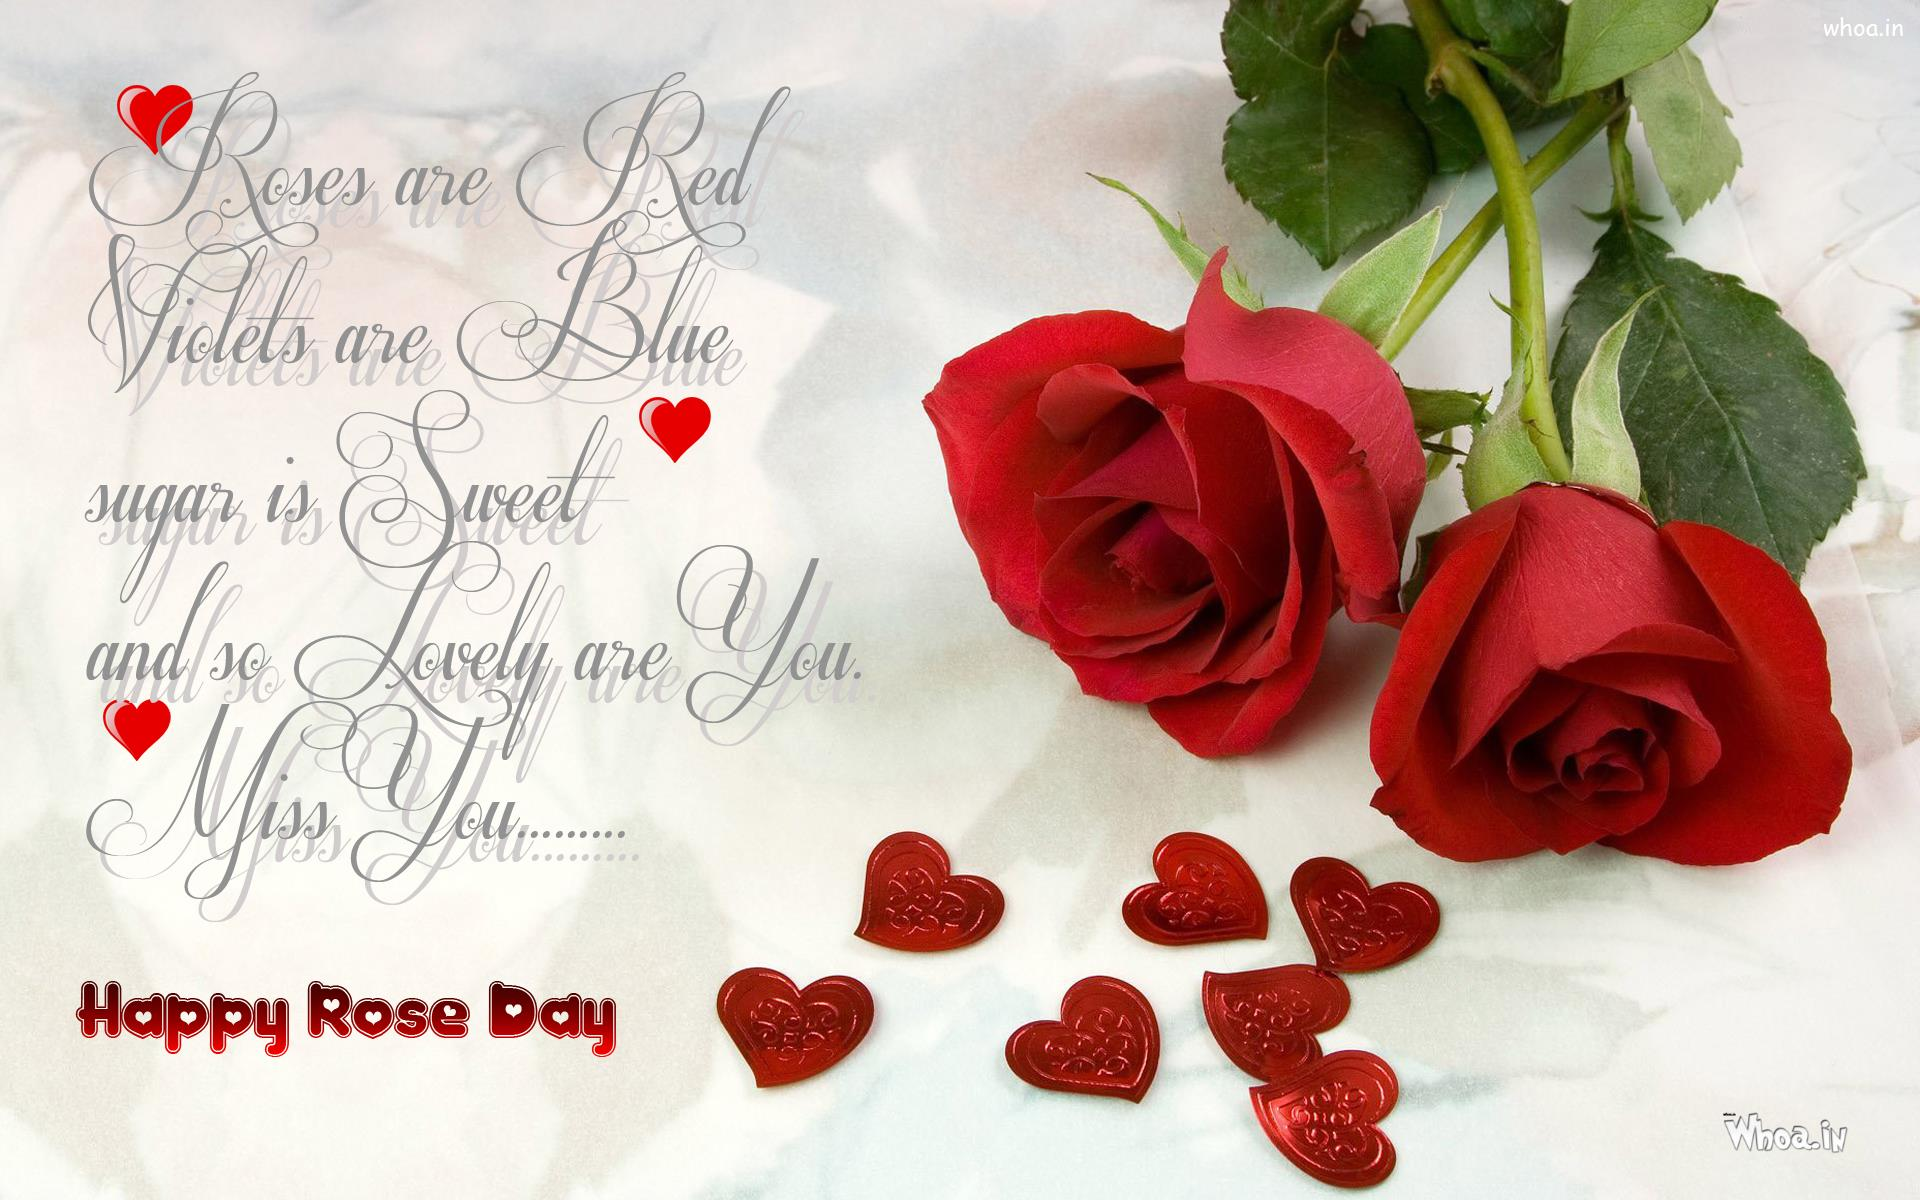 Happy Rose Day Wallpaper Greetings For Rose Day And Quotes